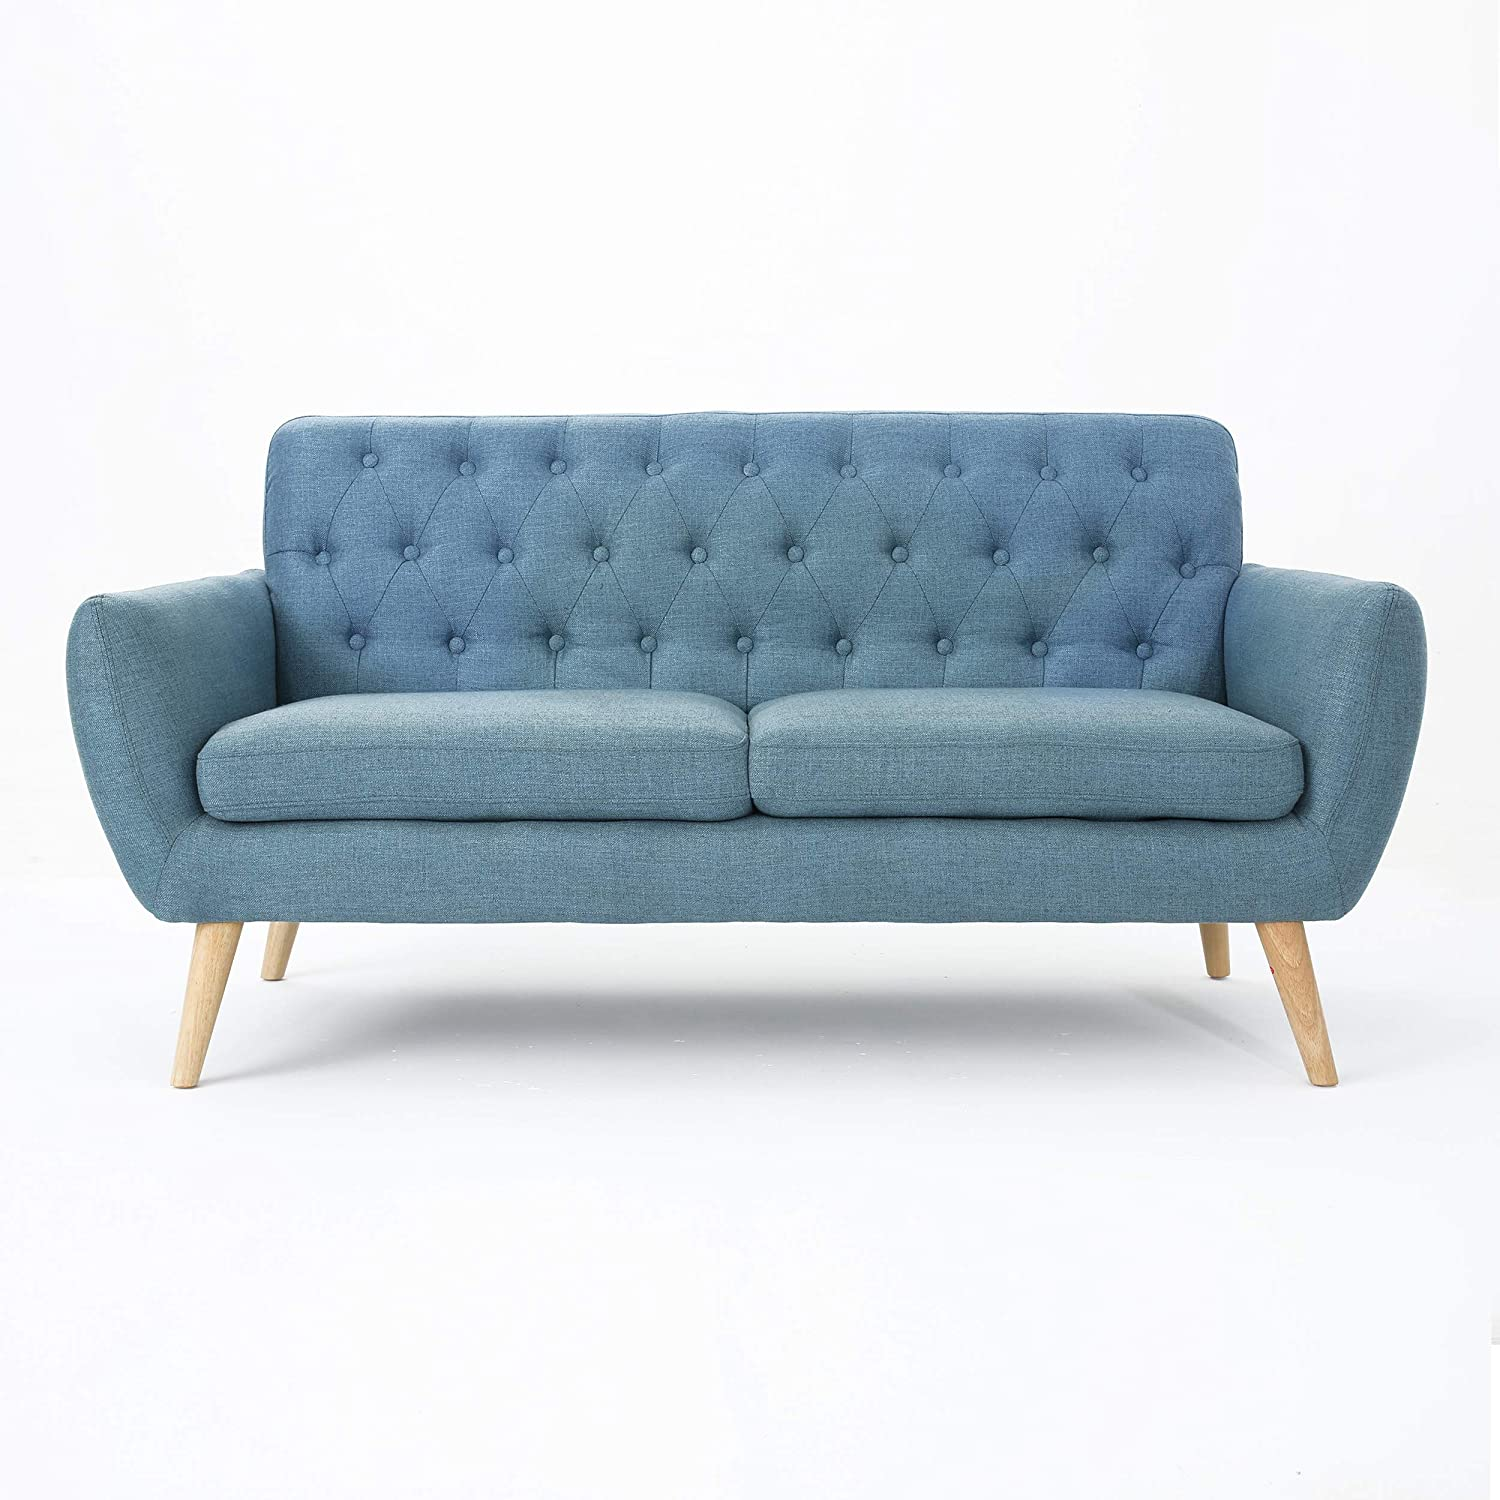 Christopher Knight Home Bernice Mid-Century Modern Tufted Fabric Sofa, Blue / Natural